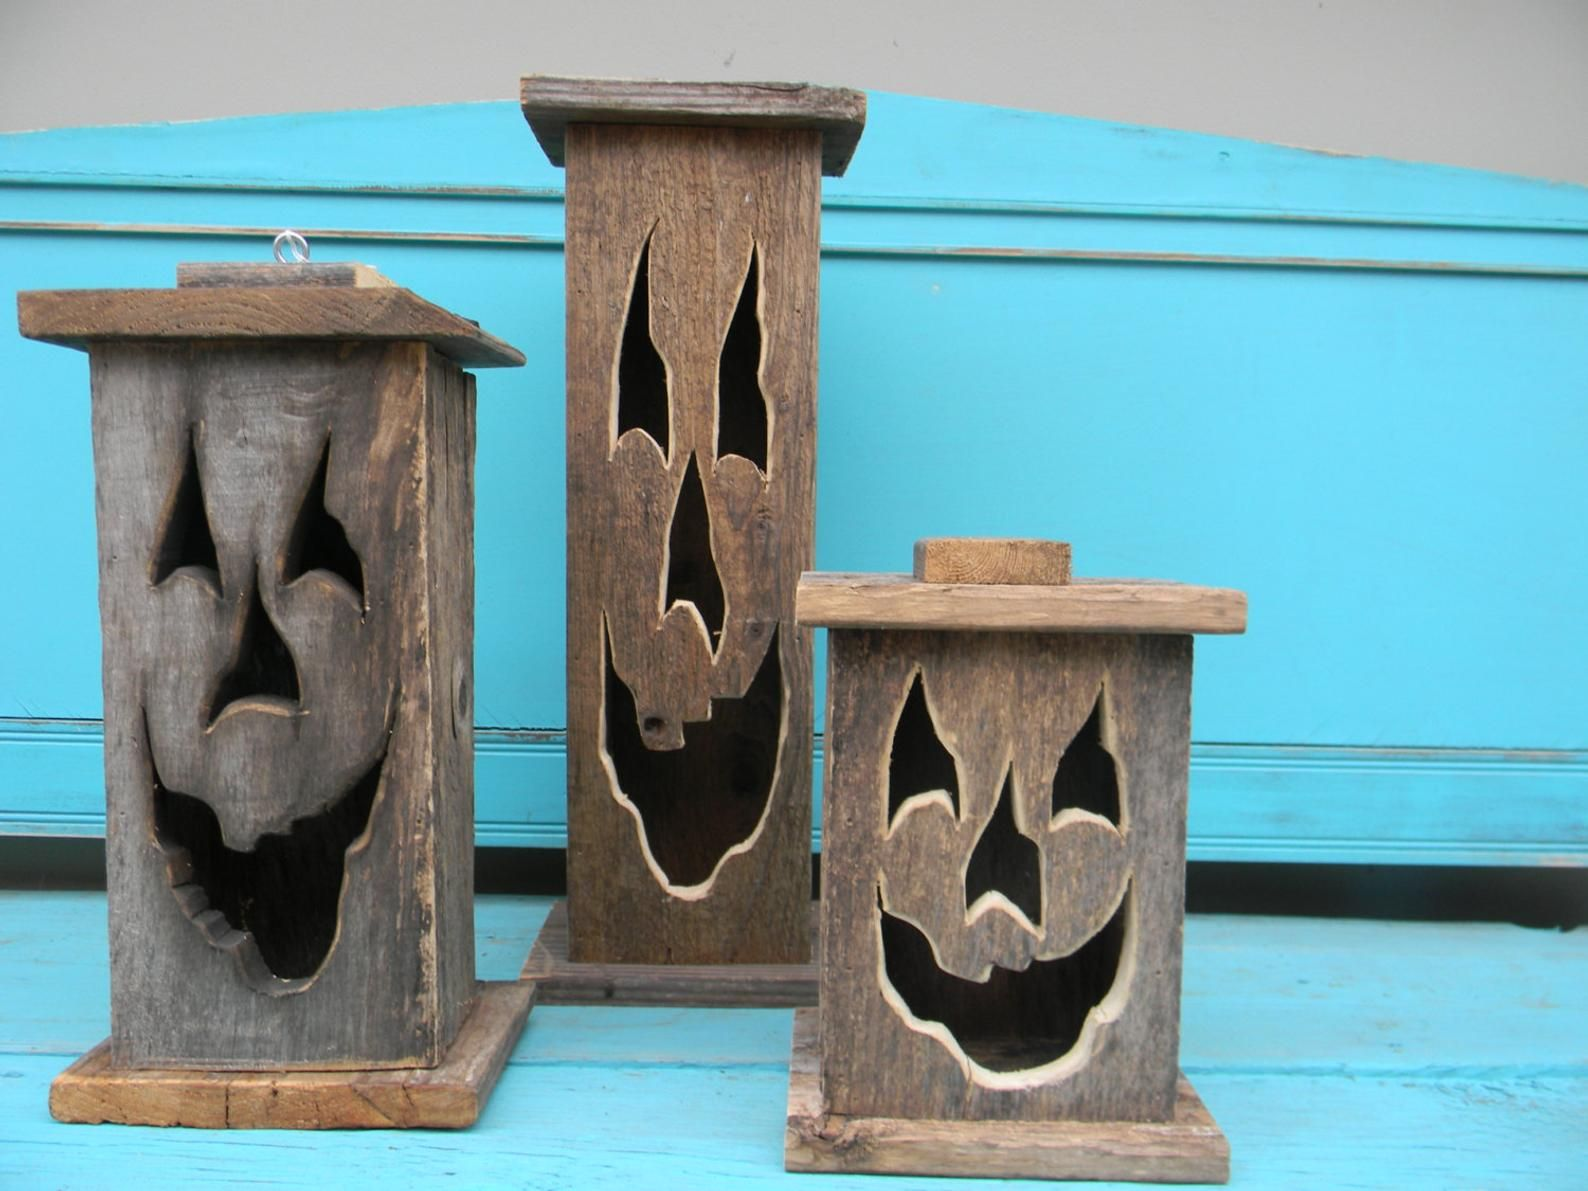 wood lantern, made with rustic worn wood, jack-o-lantern for